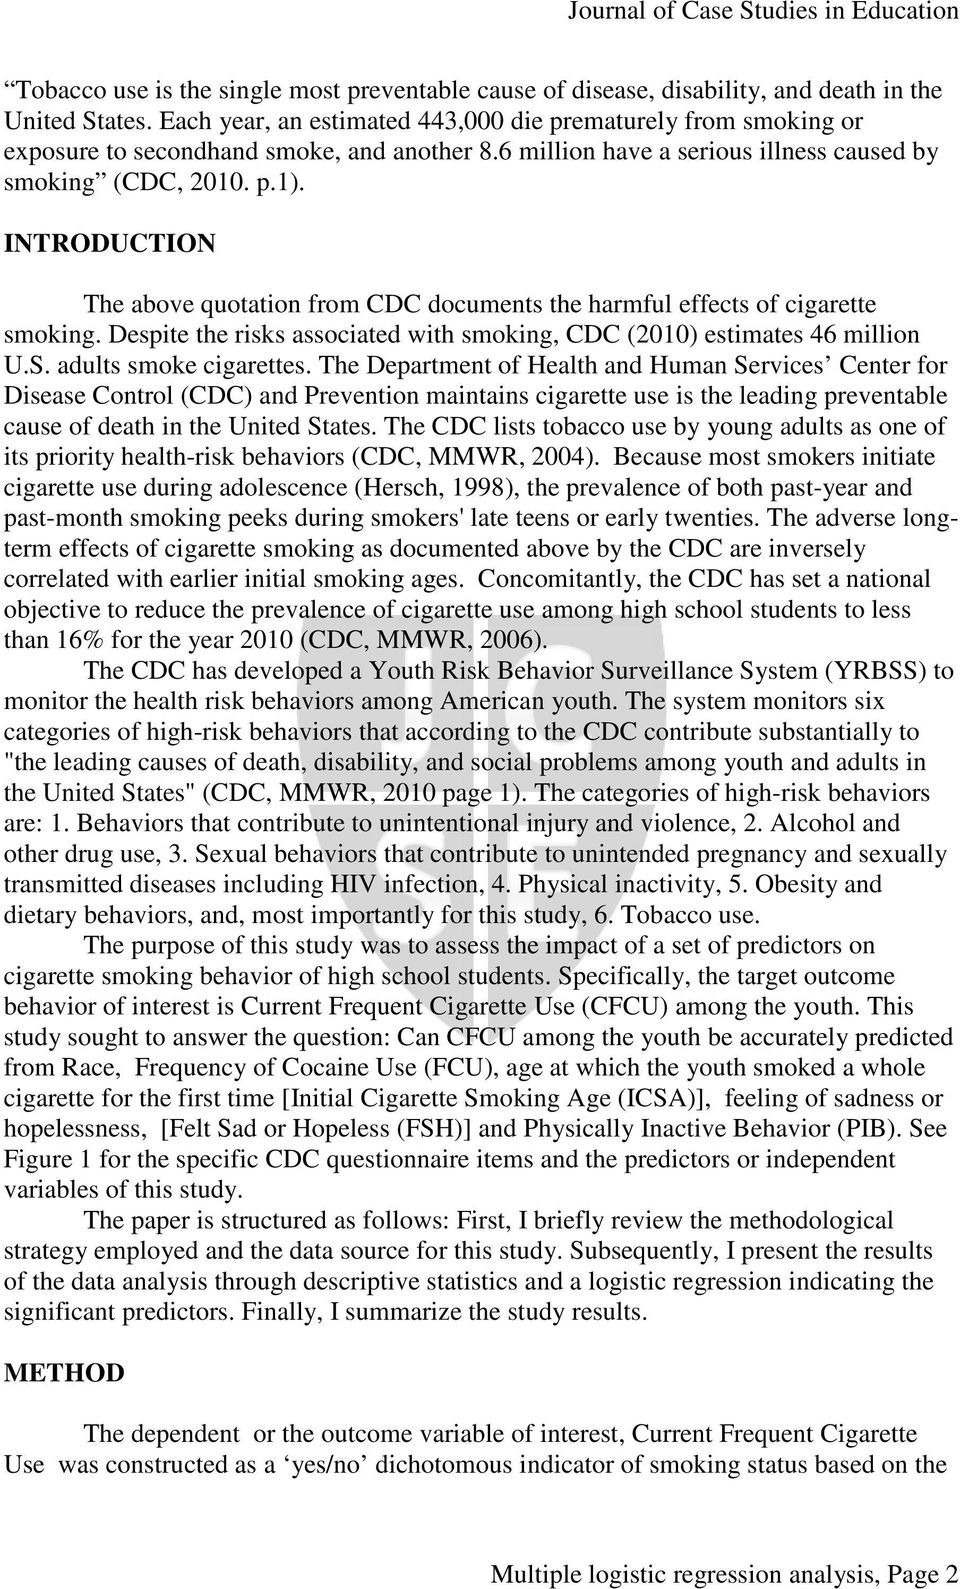 INTRODUCTION The above quotation from CDC documents the harmful effects of cigarette smoking. Despite the risks associated with smoking, CDC (2010) estimates 46 million U.S. adults smoke cigarettes.